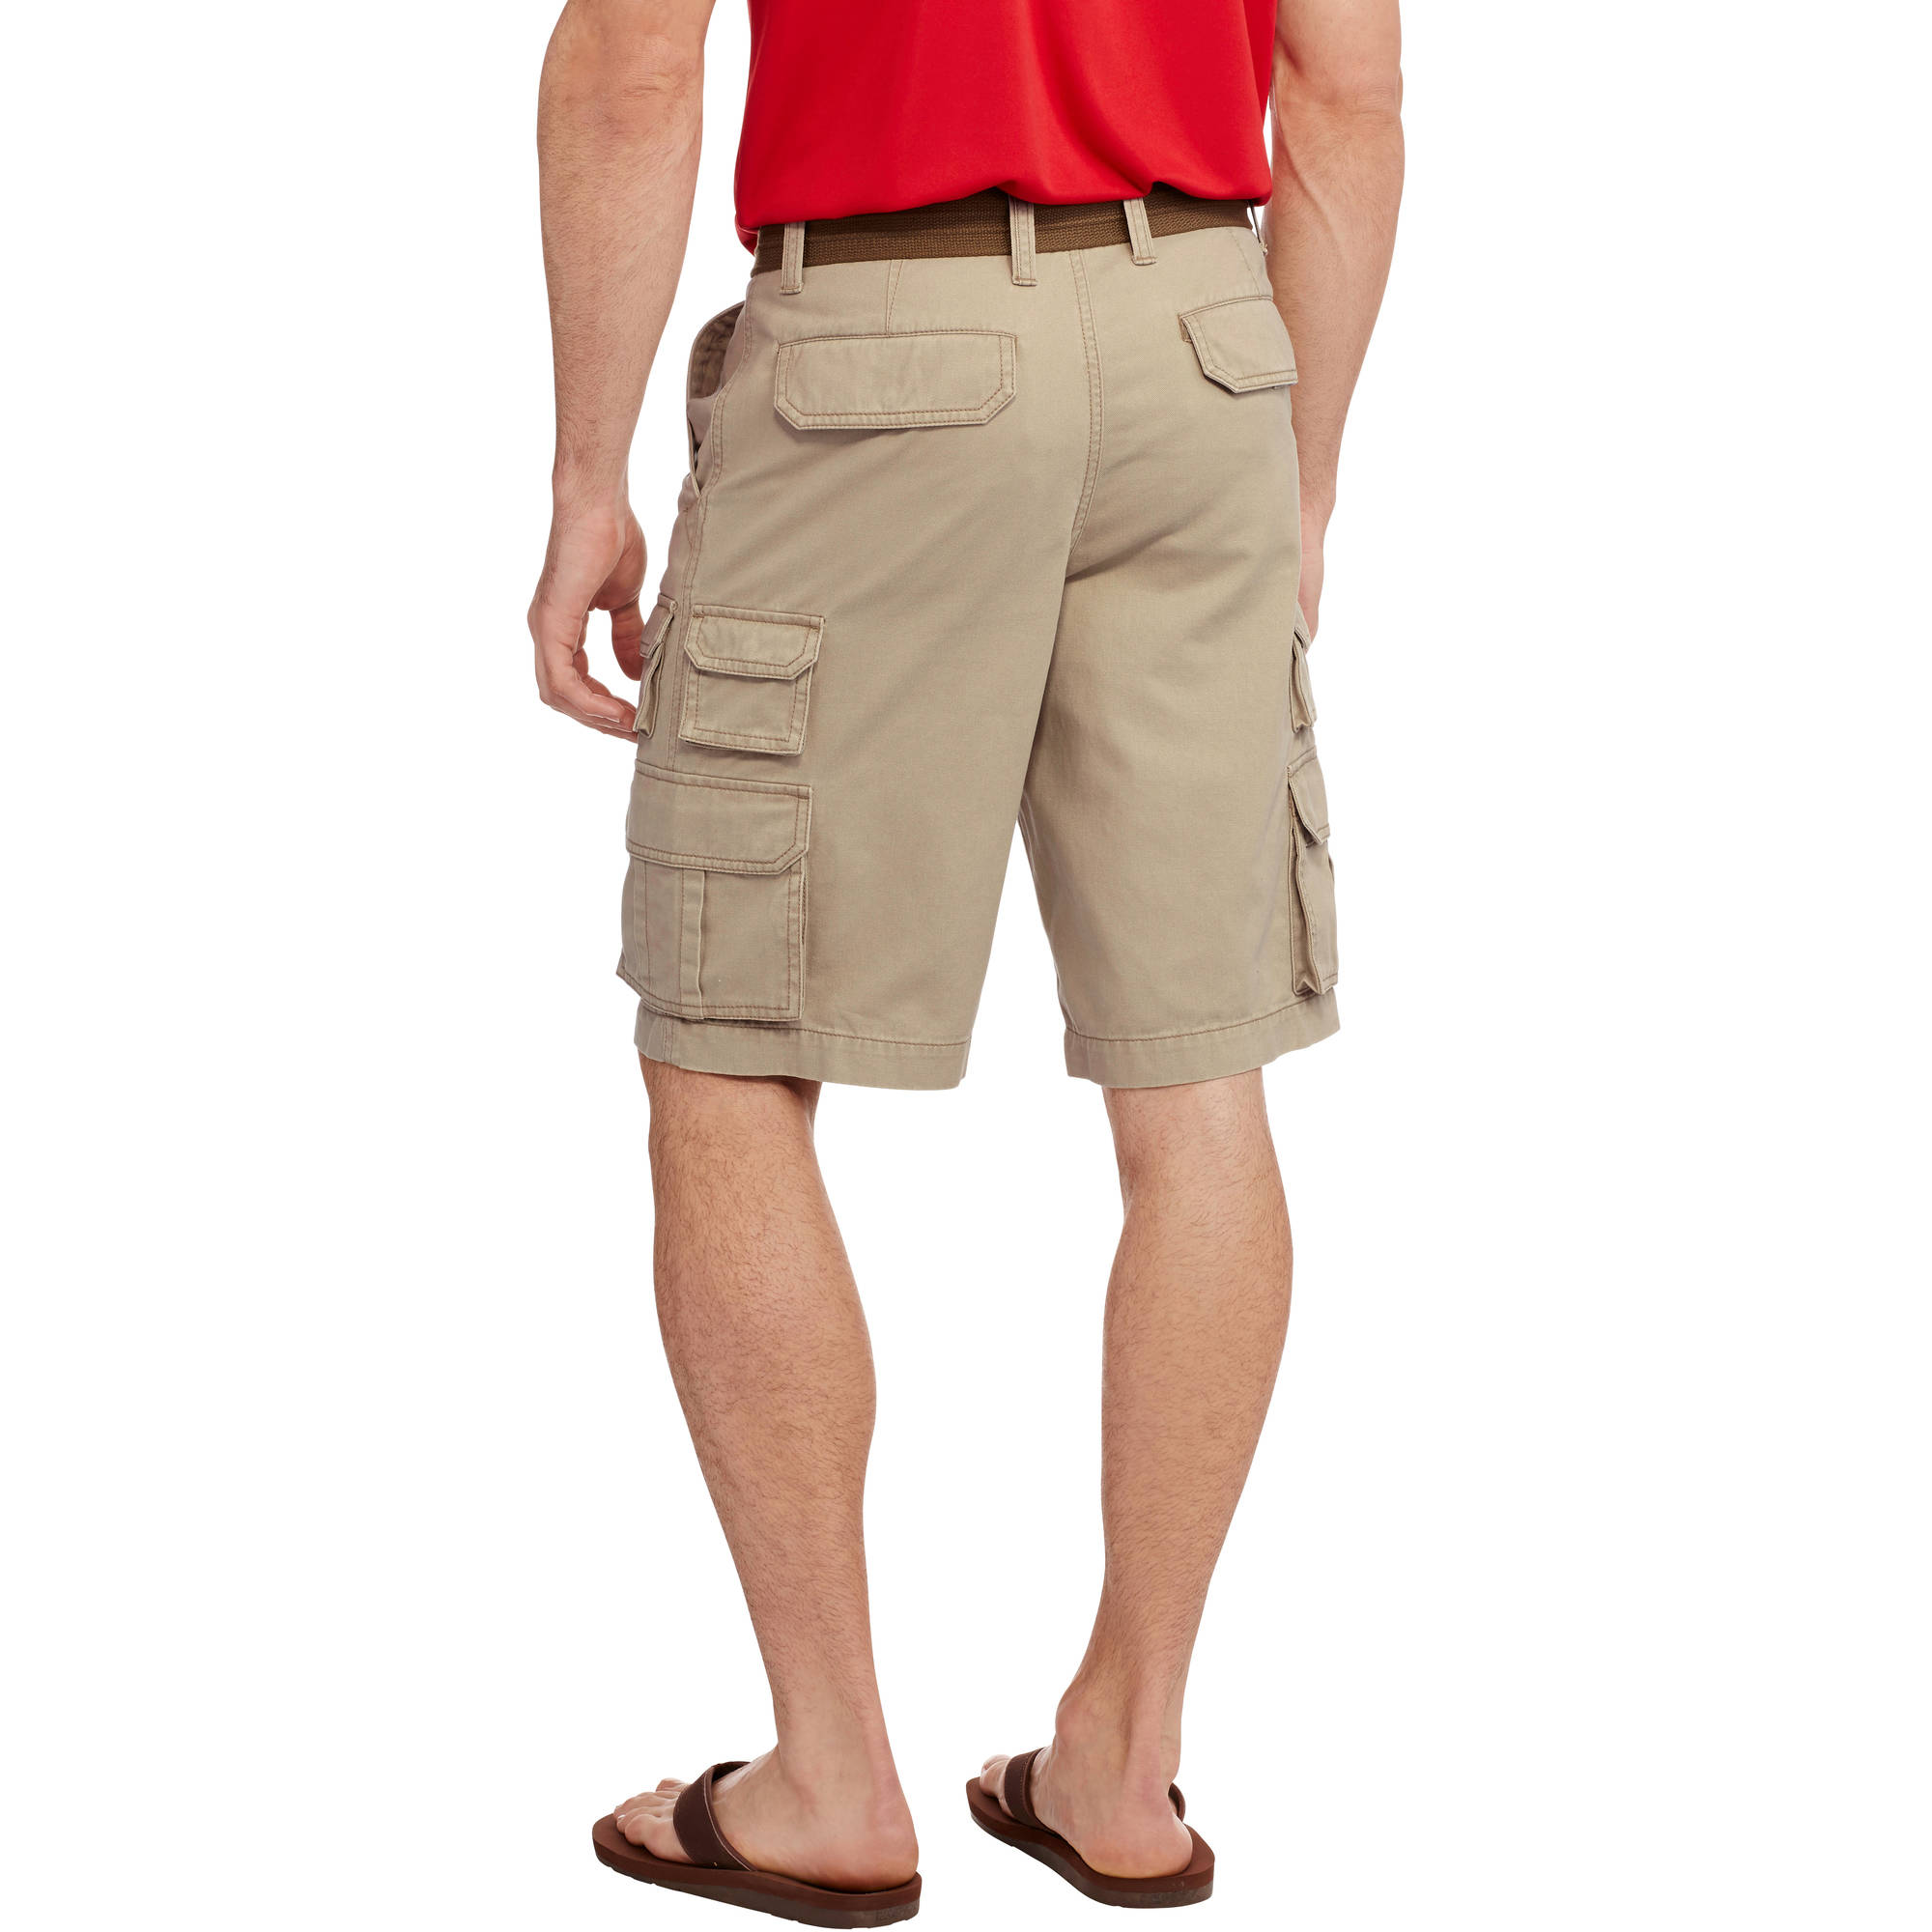 Faded Glory Men's Belted Stacked Cargo Short - Walmart.com